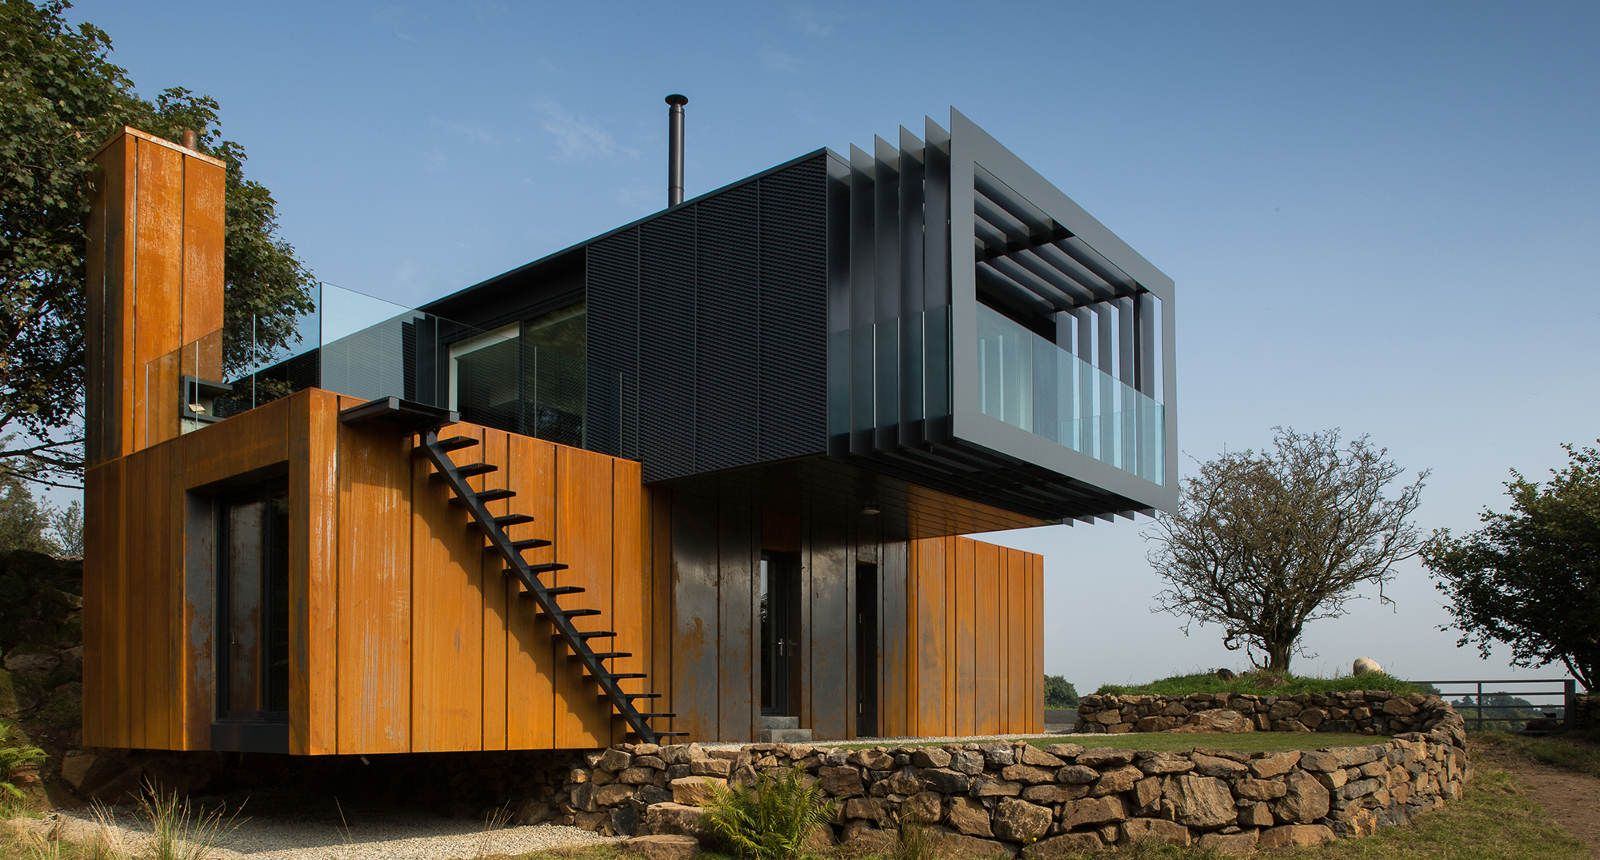 Container Haus Nordirland Stunning Home Composed Of 4 Shipping Containers By Pb